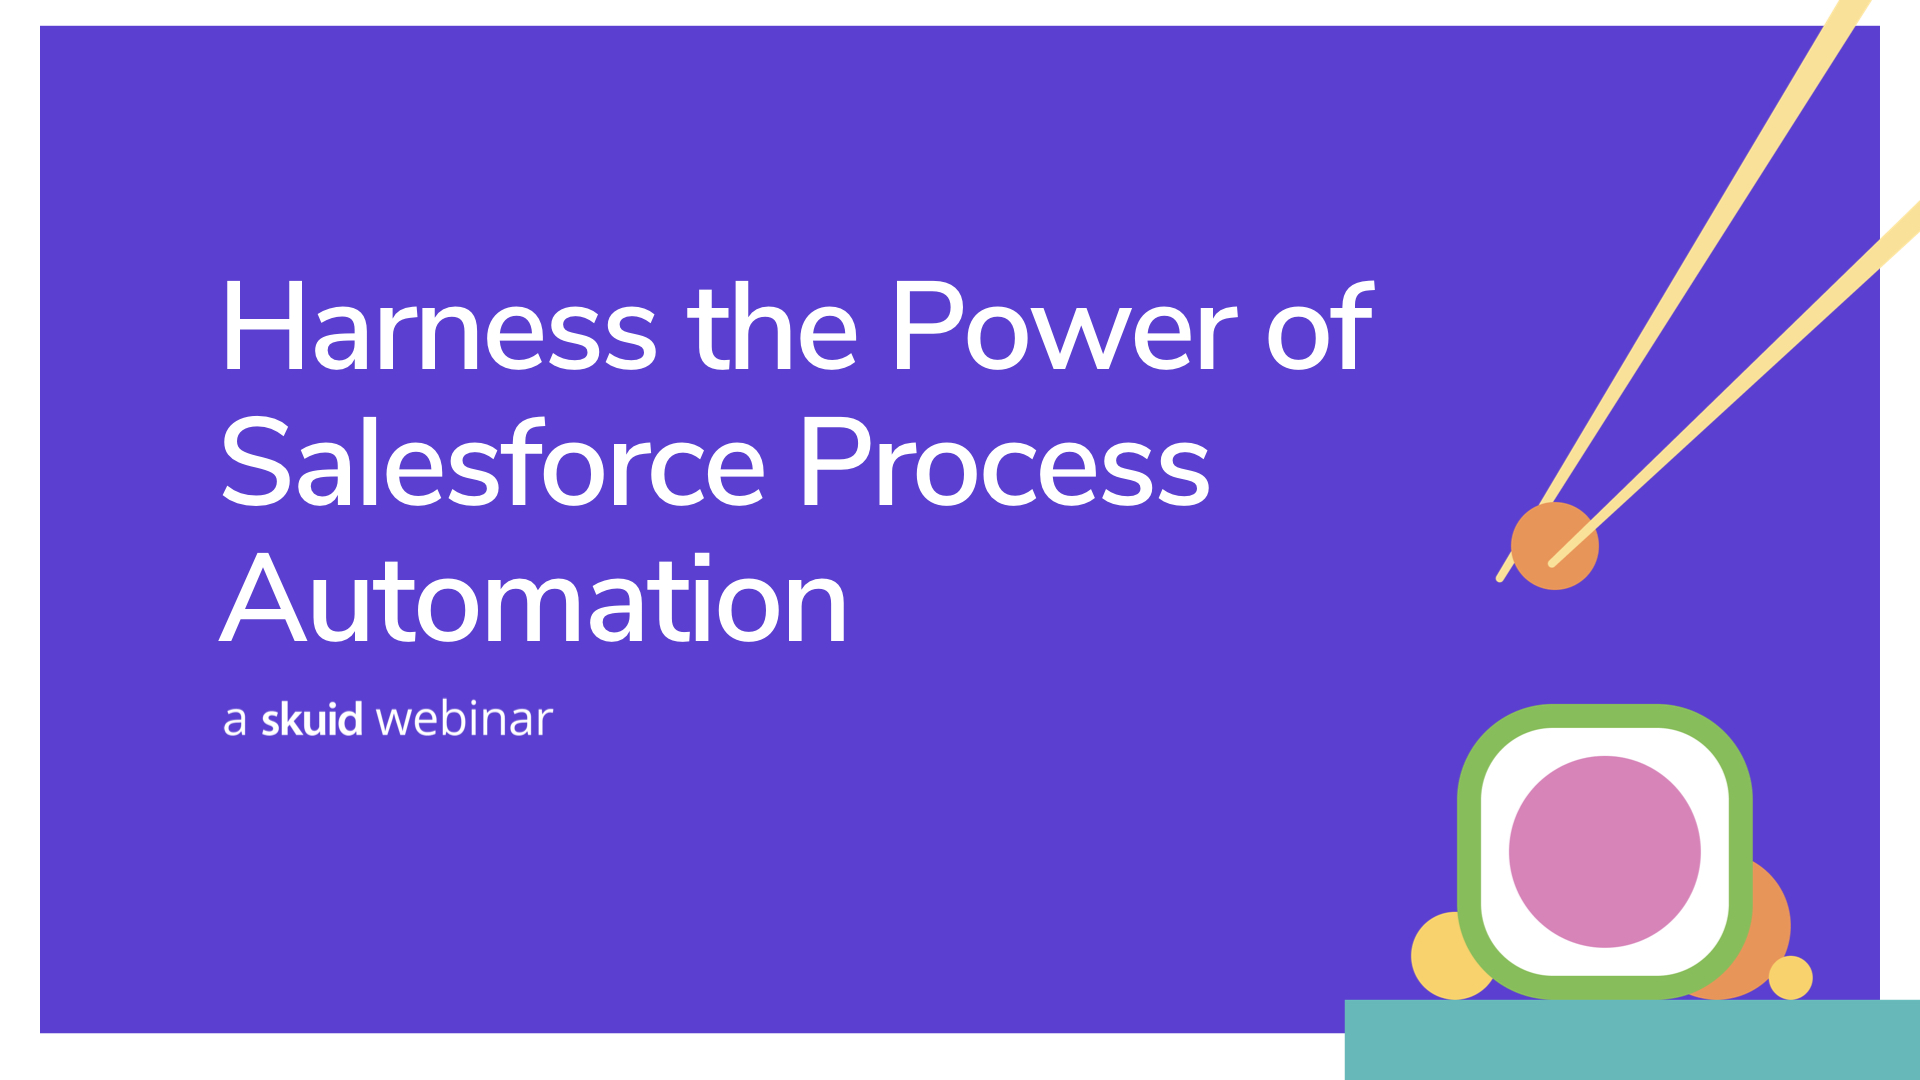 Harness the power of Salesforce process automation